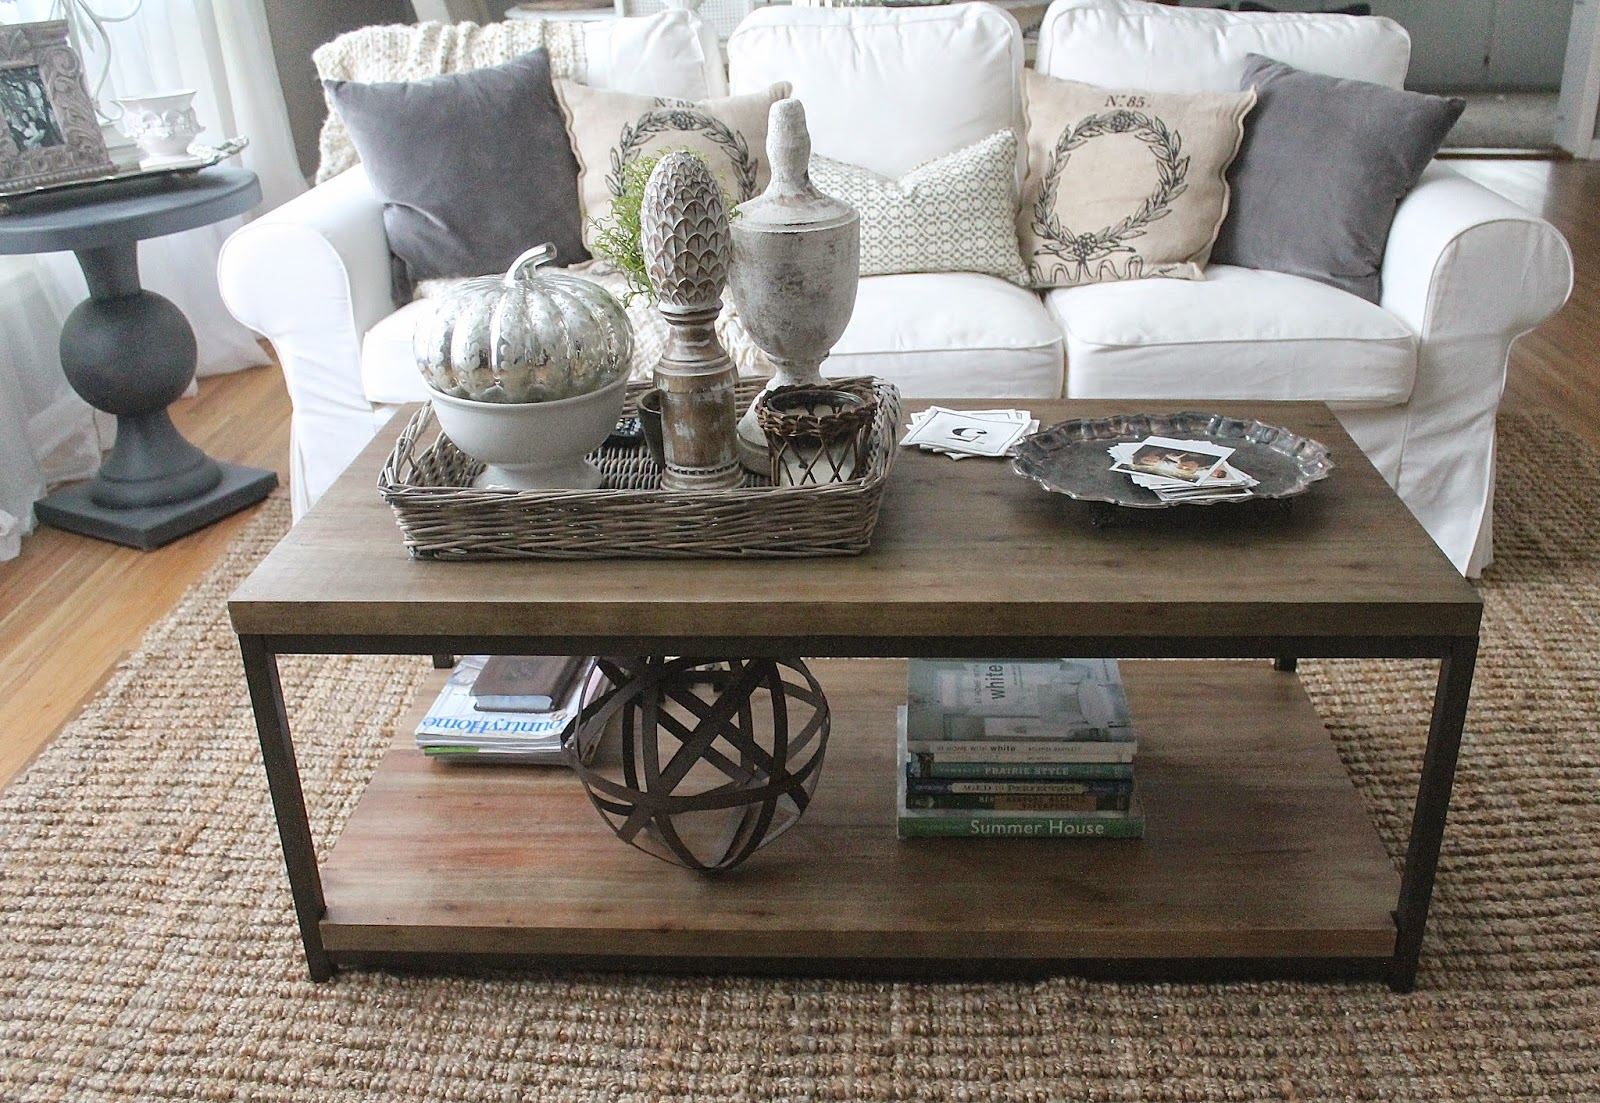 29 Tips for a perfect coffee table styling - BelivinDesign